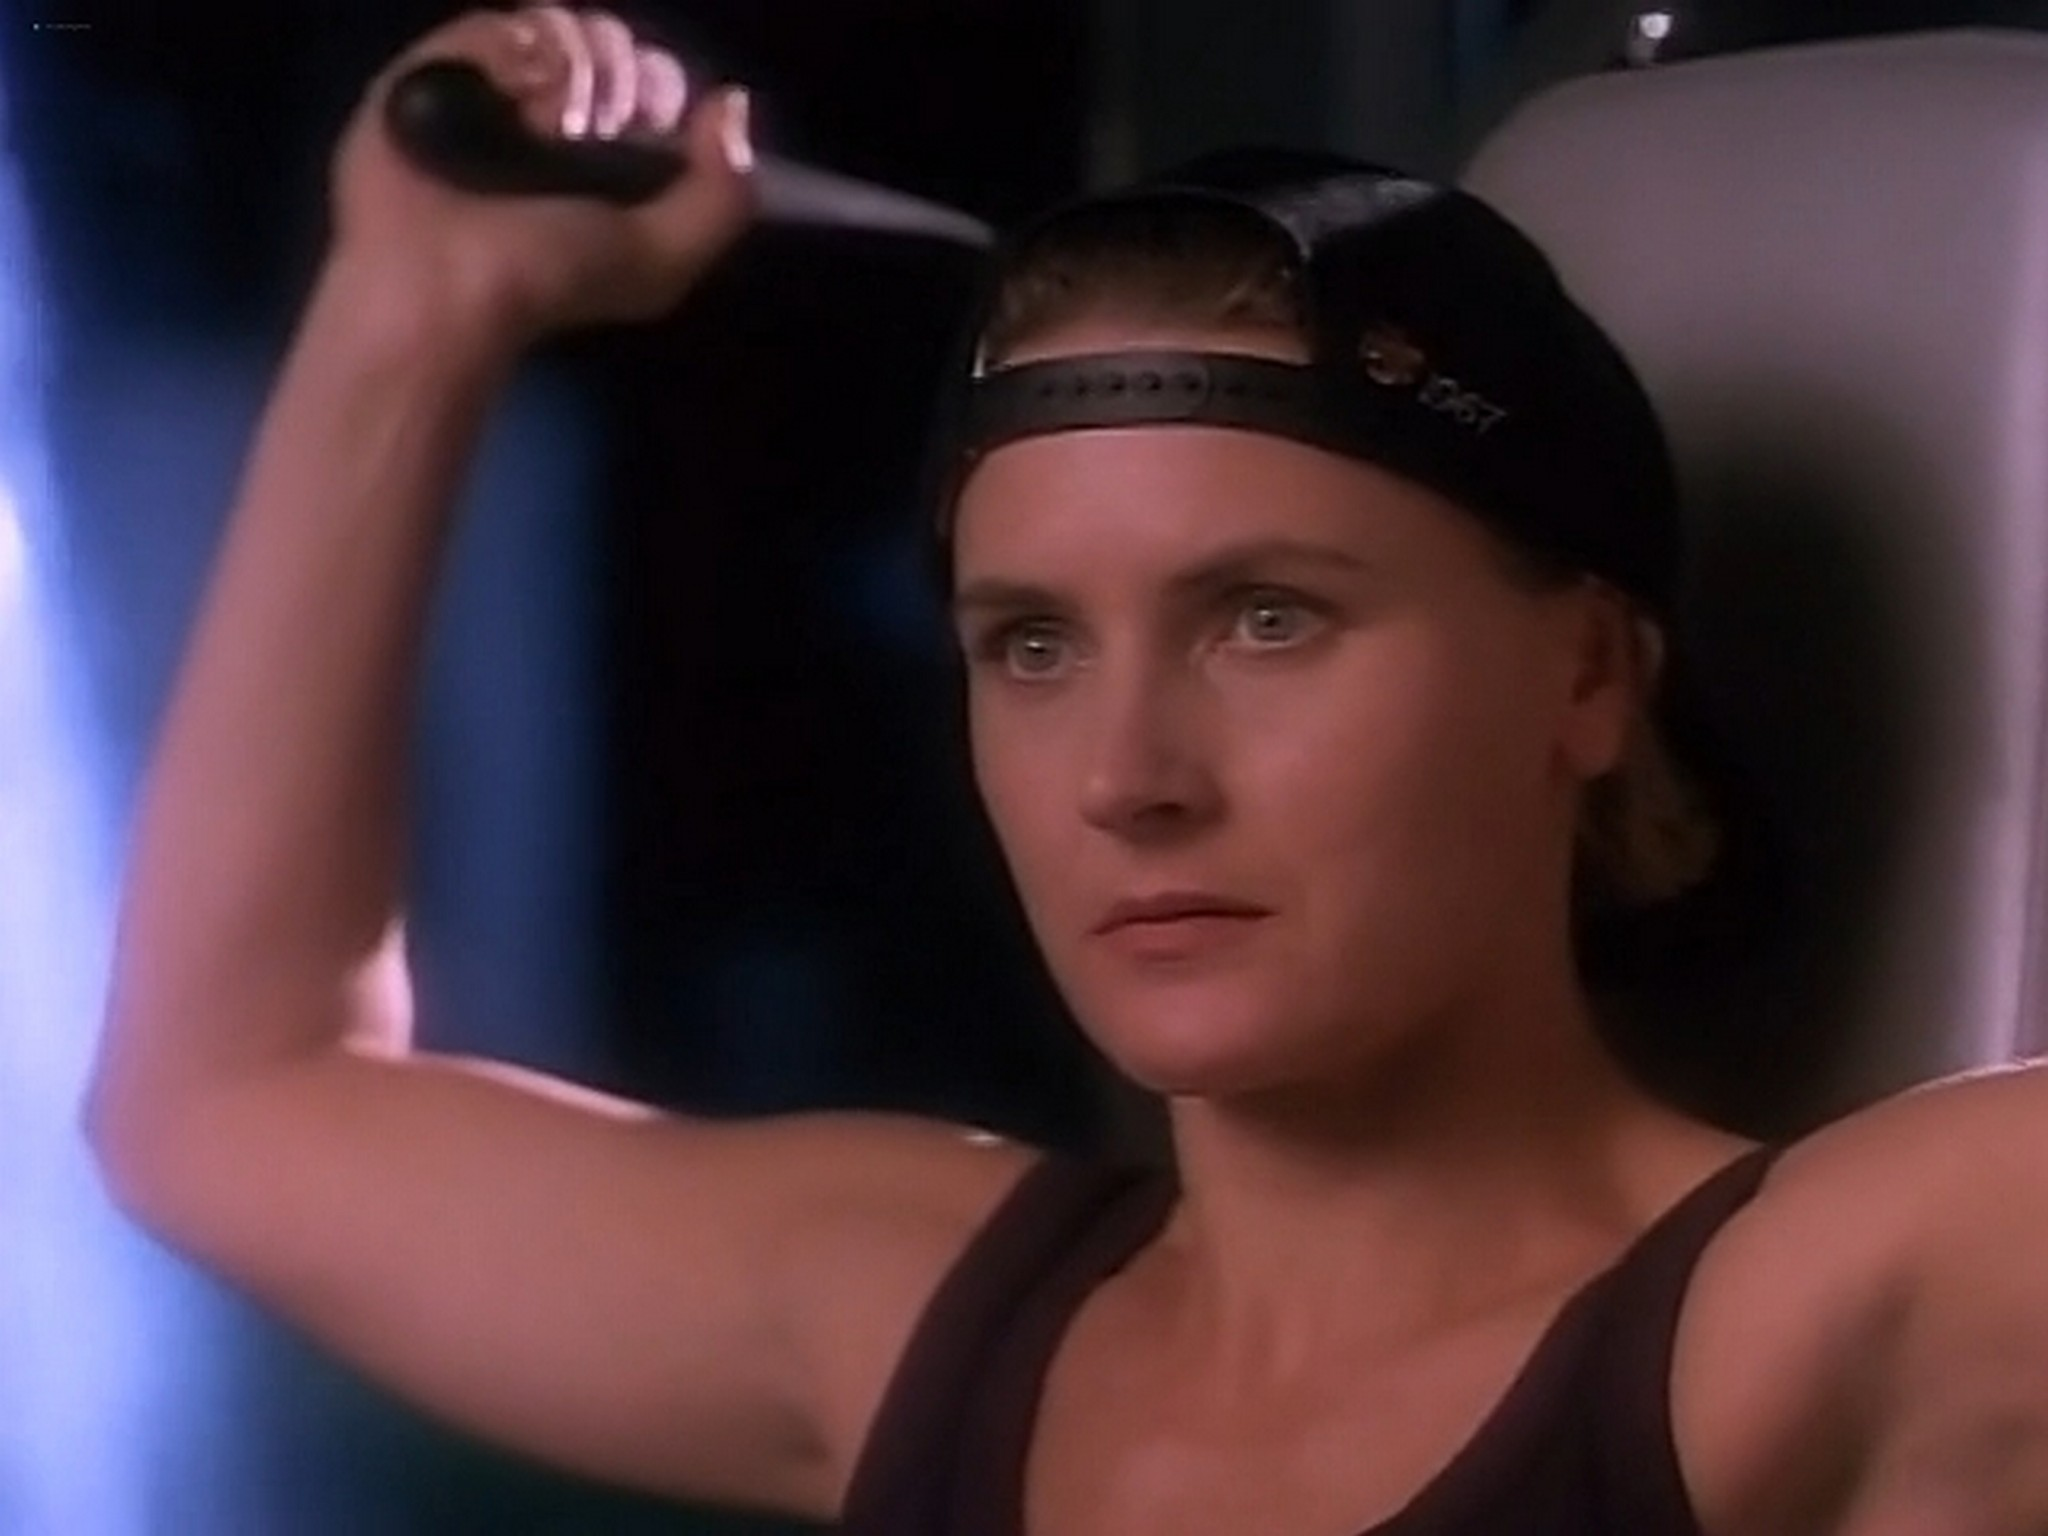 Denise Crosby nude and sex Red Shoe Diaries You Have the Right to Remain Silent 1992 DVDRip